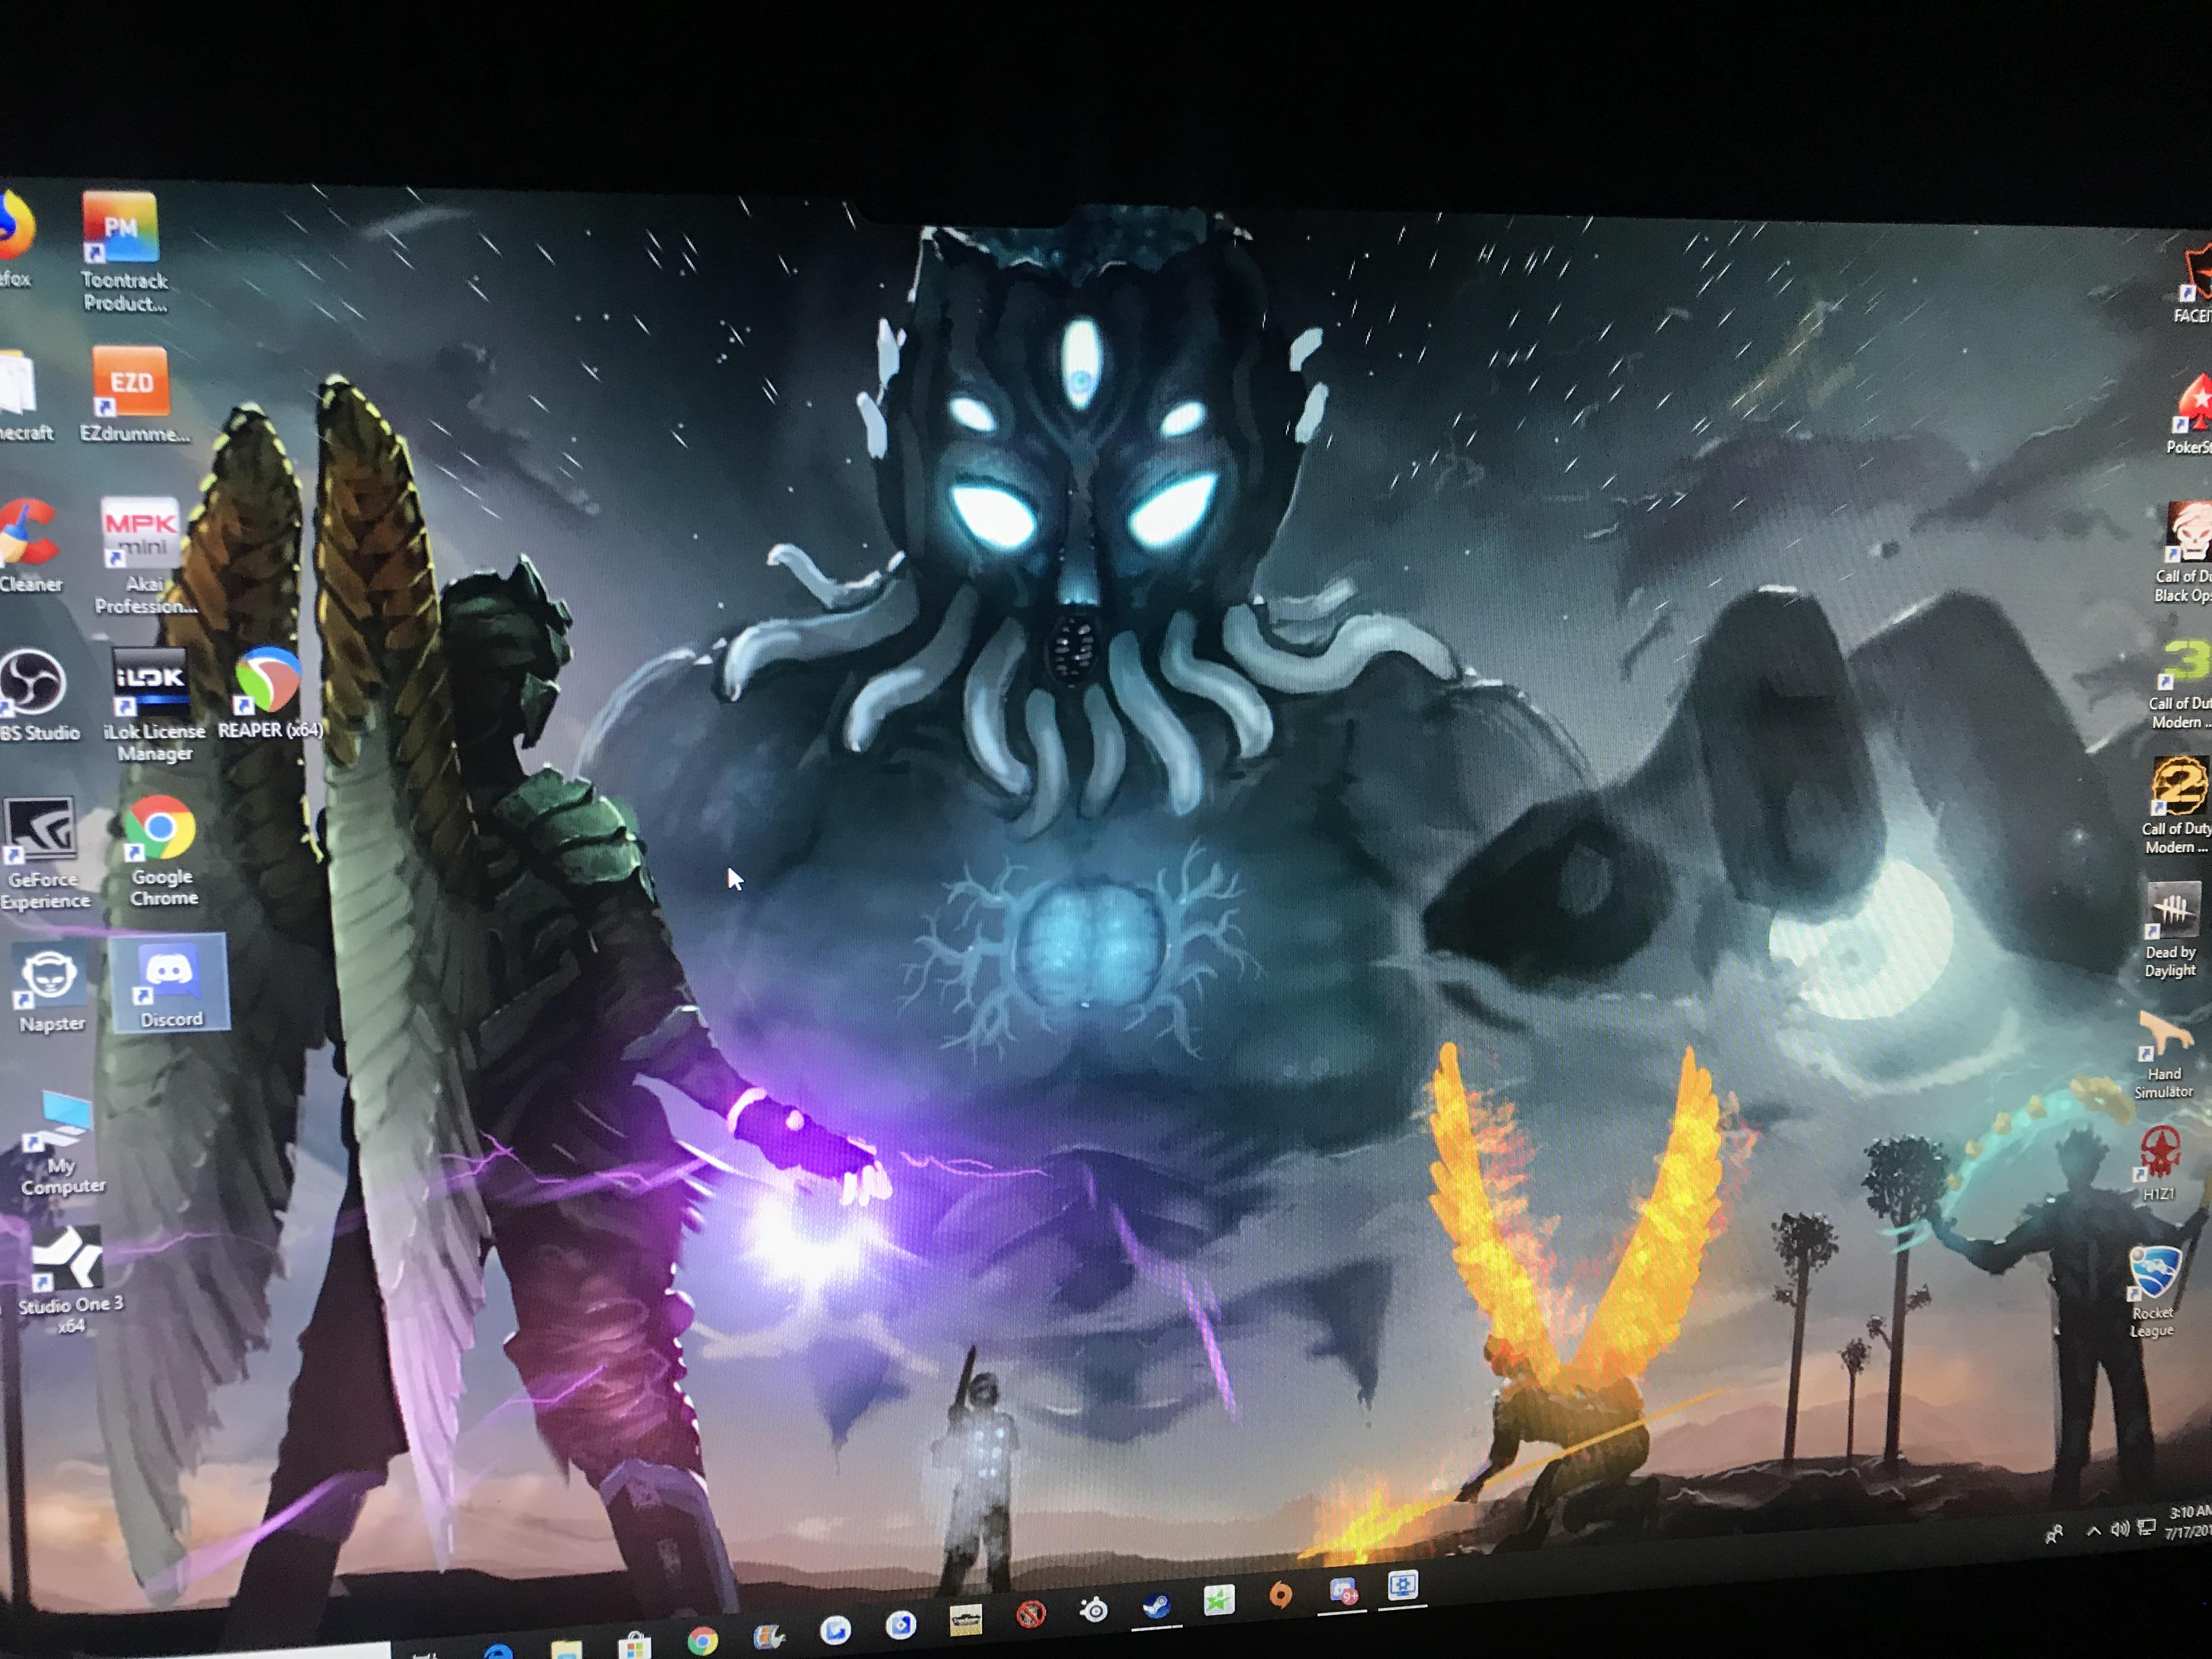 so i saw this in wallpaper engine, and realize how cool would it be